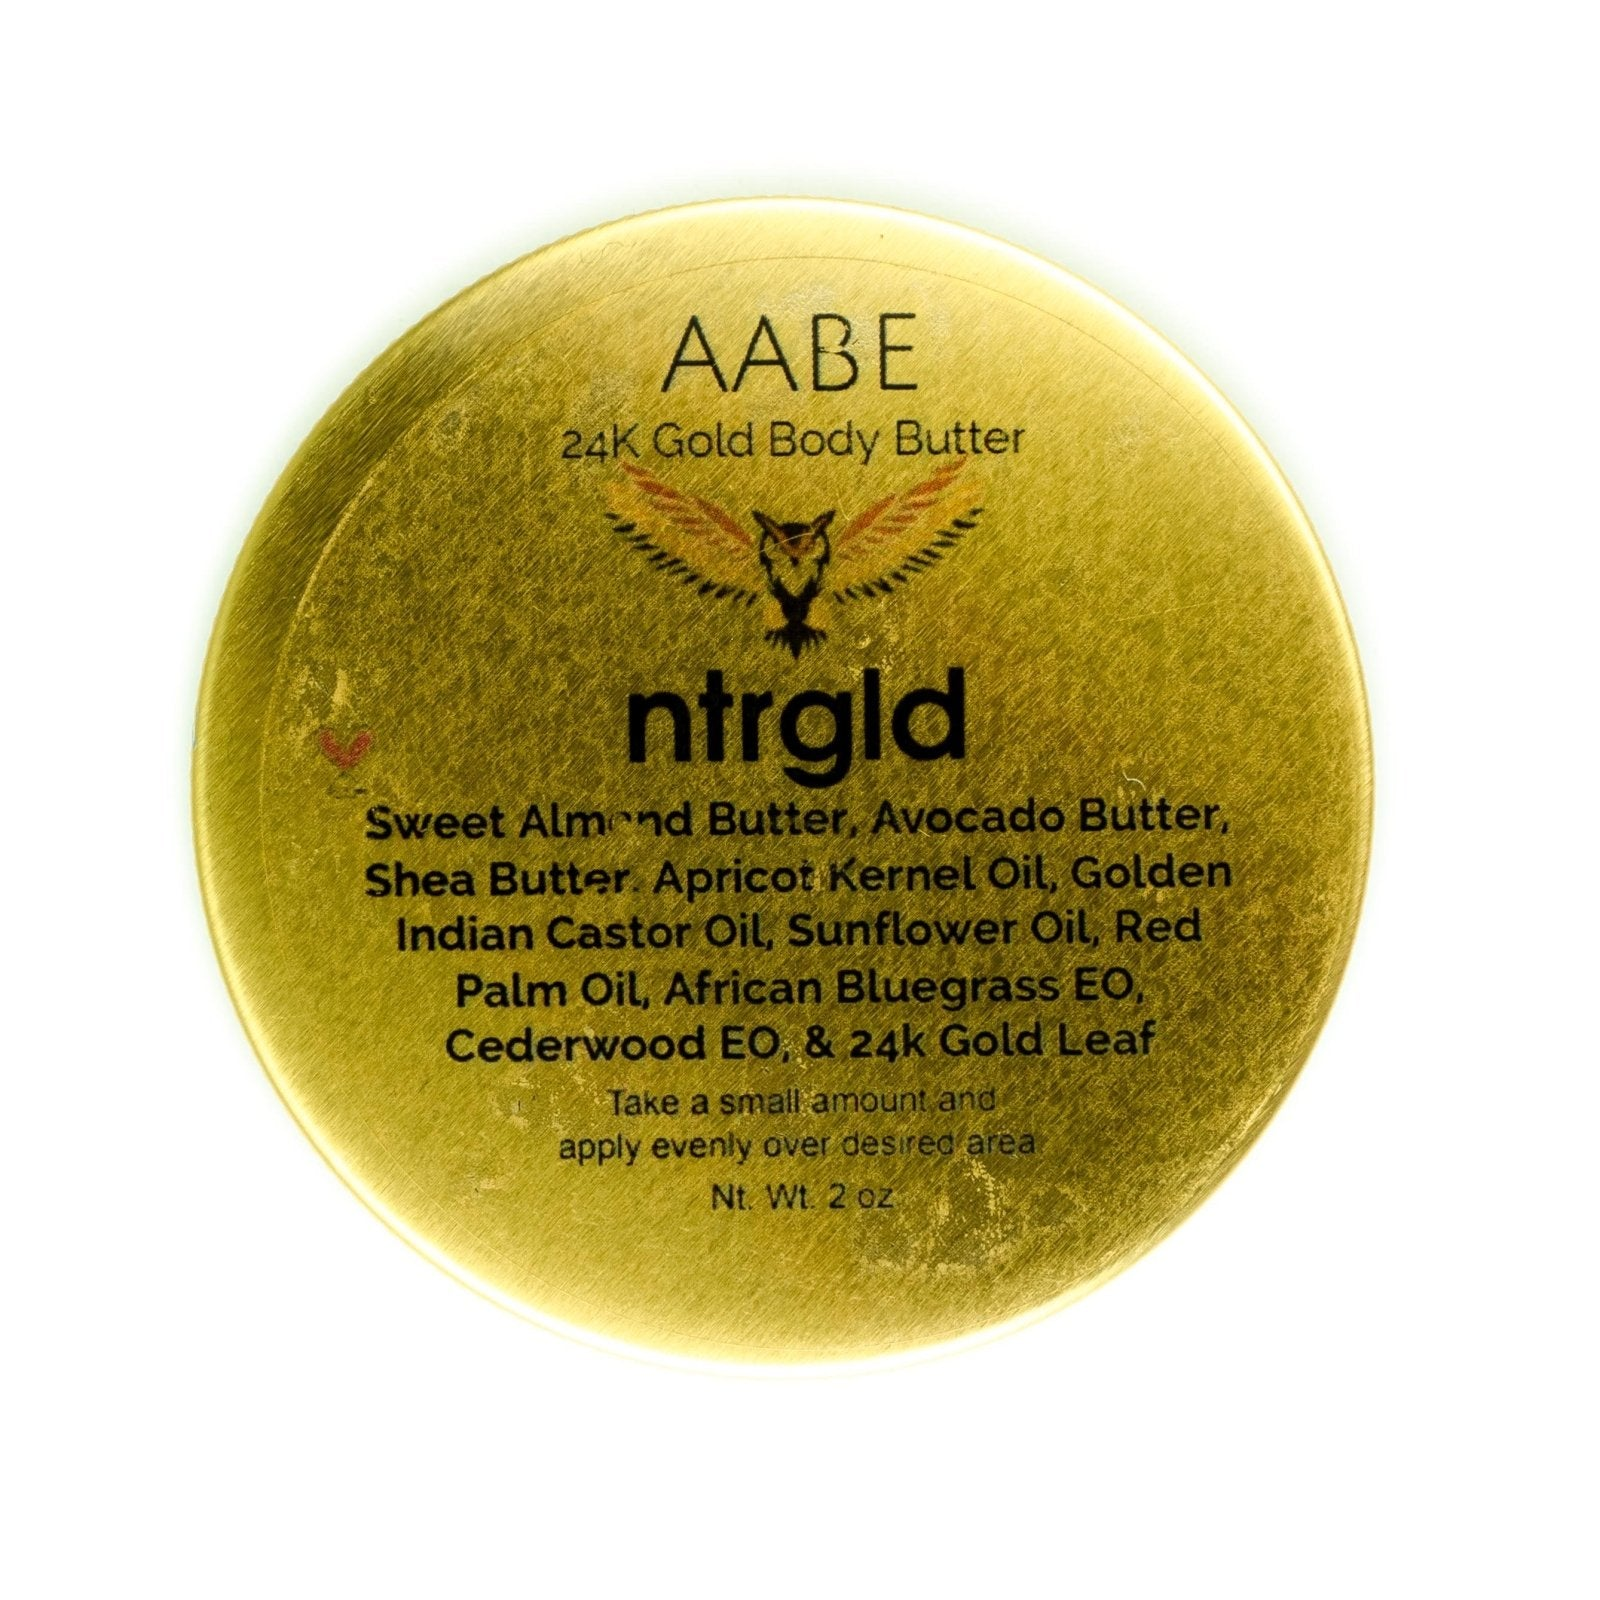 AABE - 24k Gold Hair & Body Butter (Limited Edition) - Neter Gold - NTRGLD - NETER GOLD - All natural body care products designed to increase your natural godly glow. - hair growth - eczema - dry skin